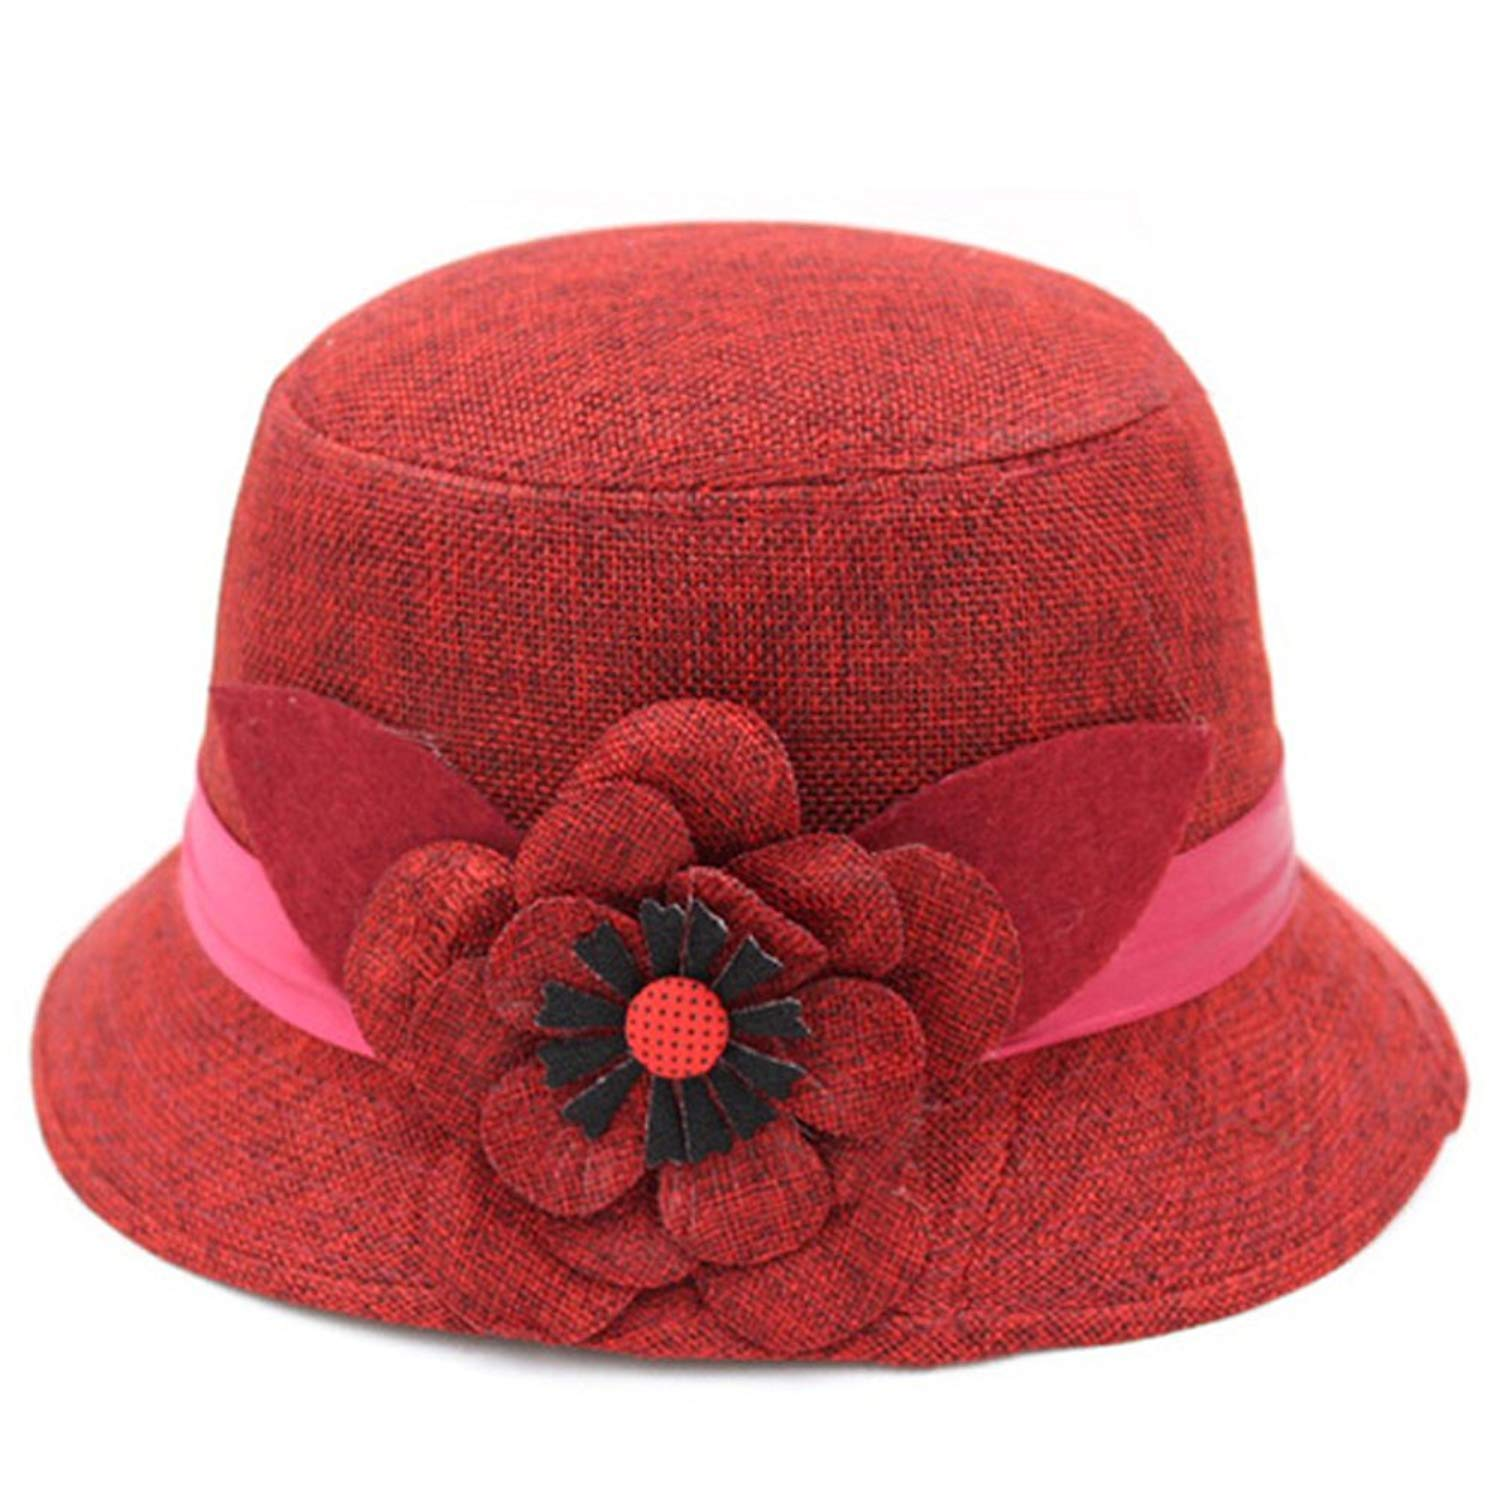 Hats for Women/ Spring and summer hat mom/Bucket Hat/Fisherman Hat/Middle-aged Korean fashion hats/ Ms. hat outdoor autumn flowers